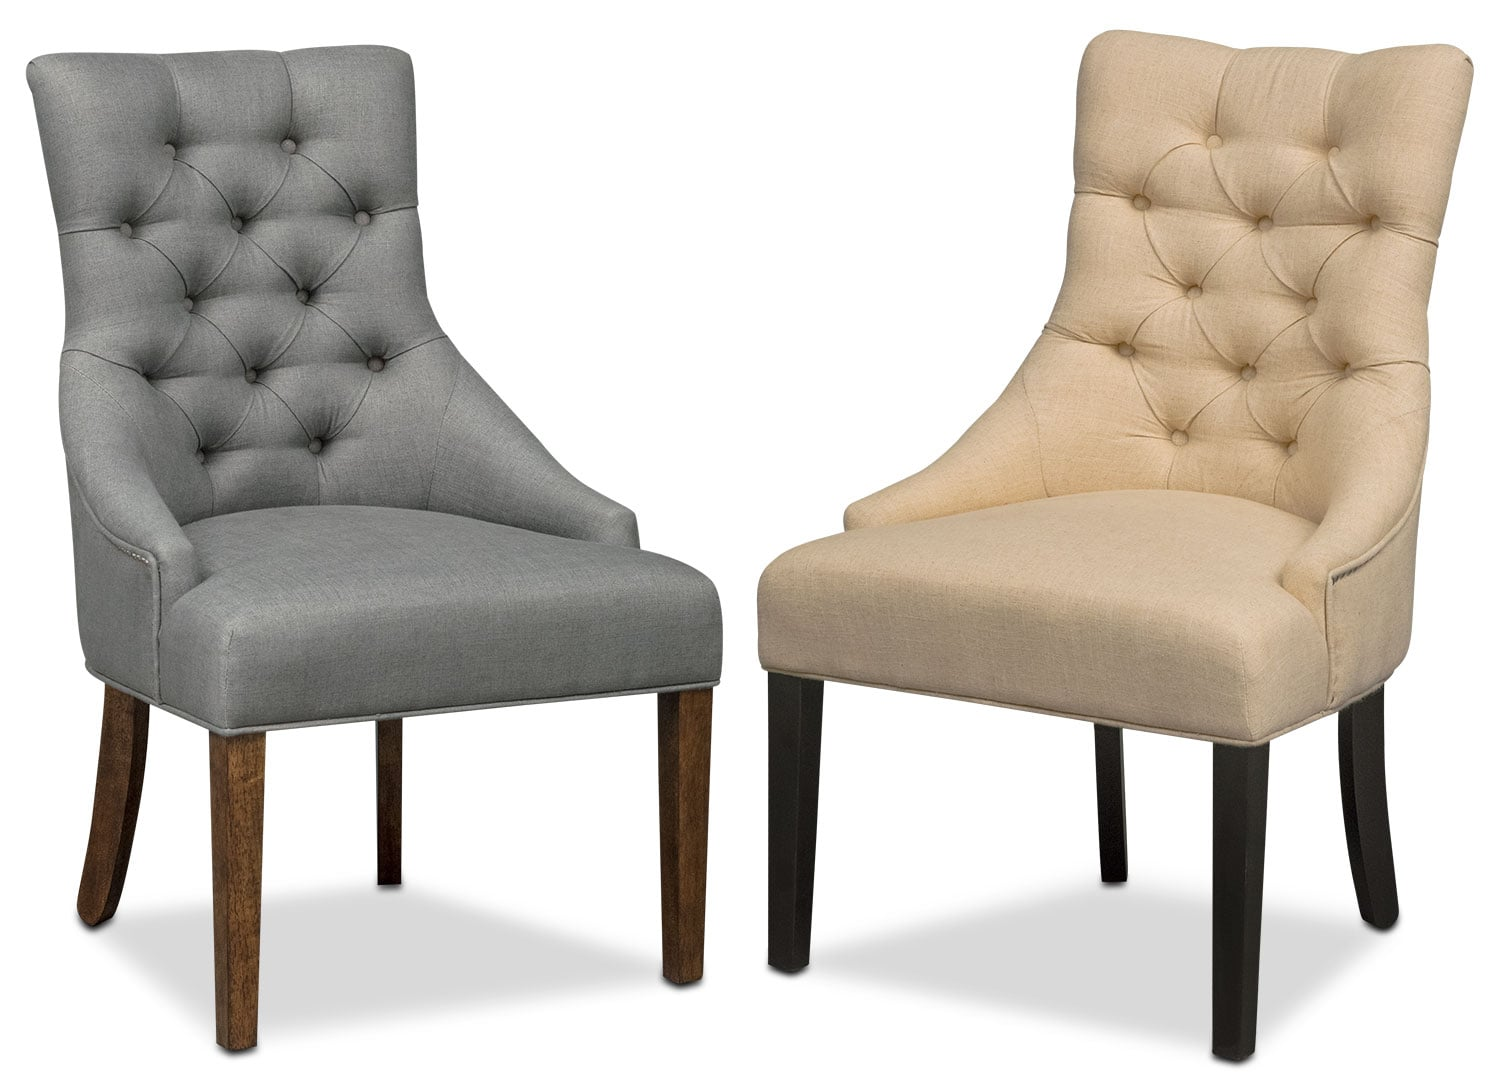 Search Results - Value City Furniture